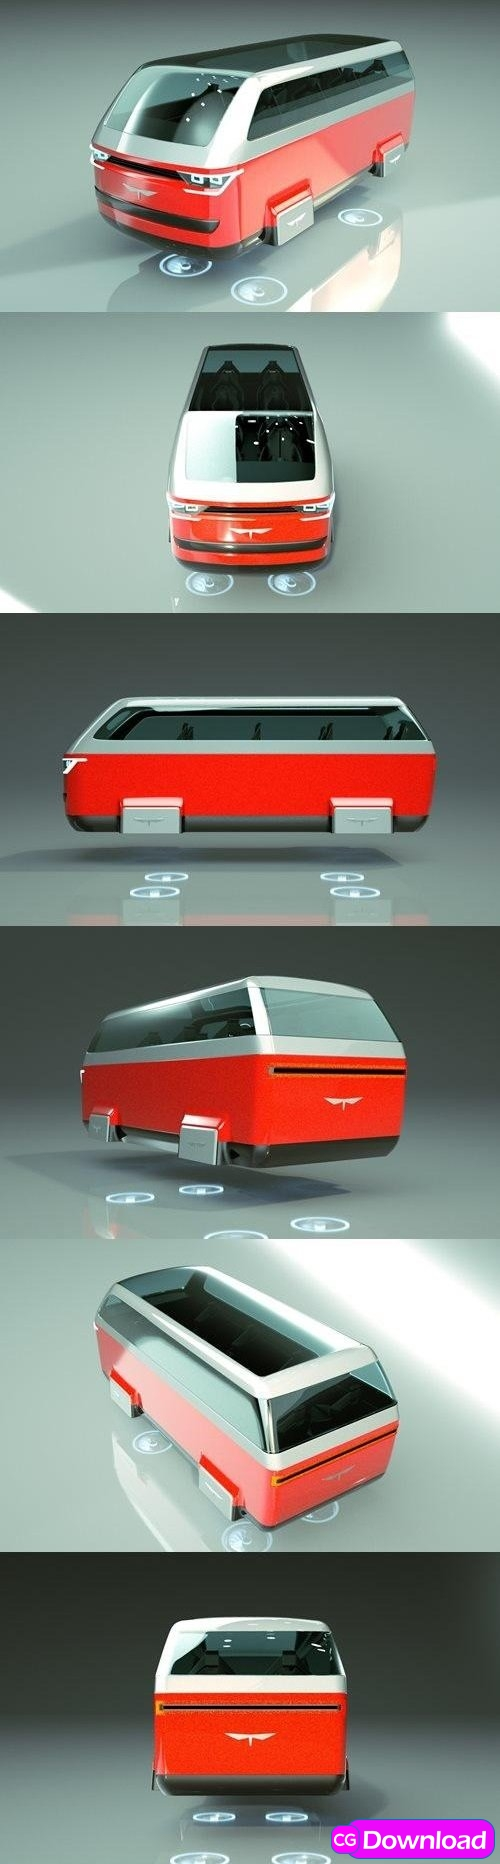 Download T-Hover Minivan Car 19 – Cheap & Cool series – 3D Model Free